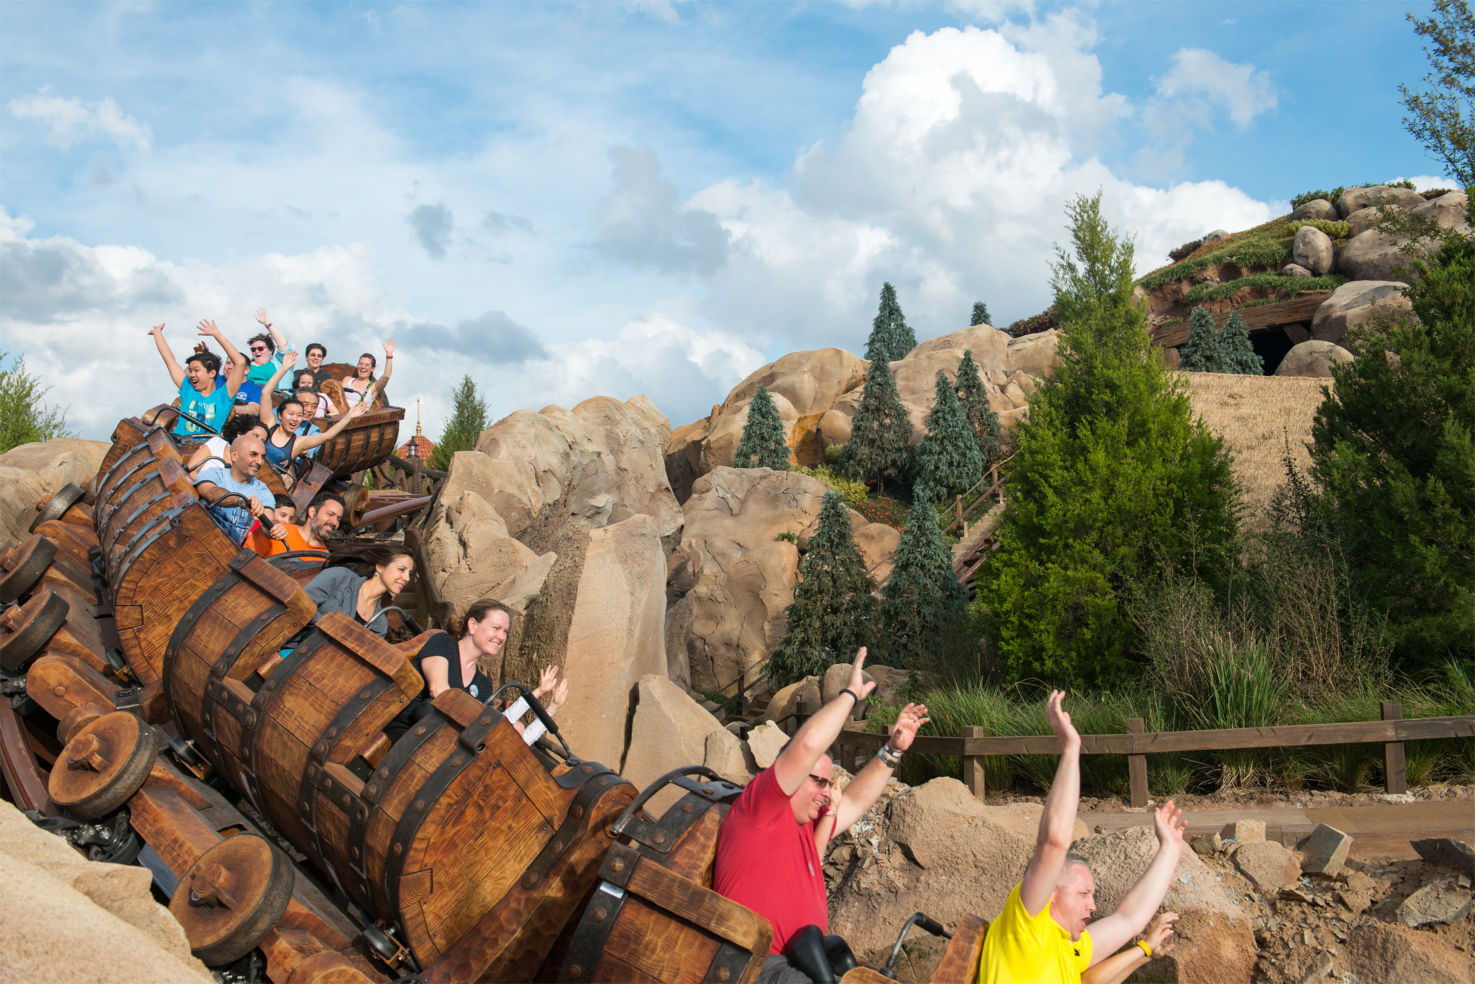 Seven Dwarfs Mine Train roller coaster, Disney World, Magic Kingdom